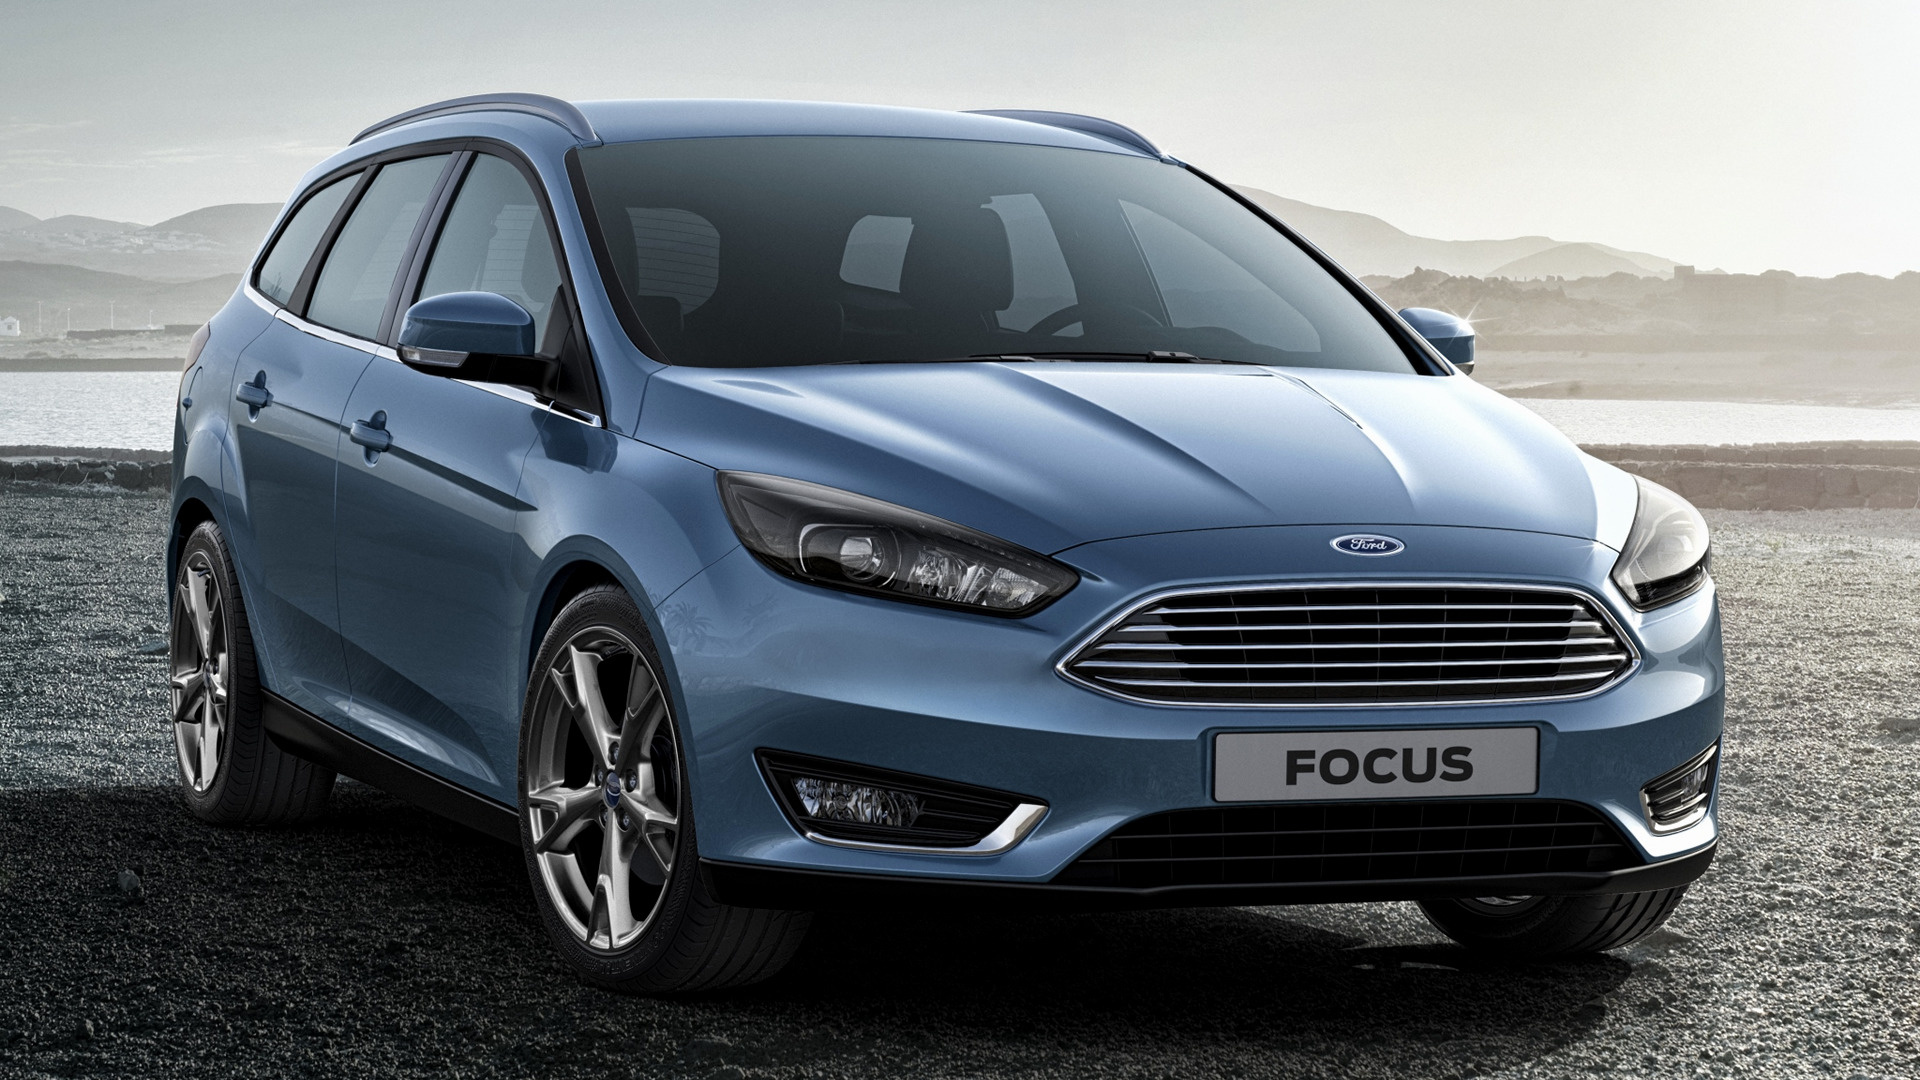 ford focus turnier 2014 wallpapers and hd images car pixel. Black Bedroom Furniture Sets. Home Design Ideas